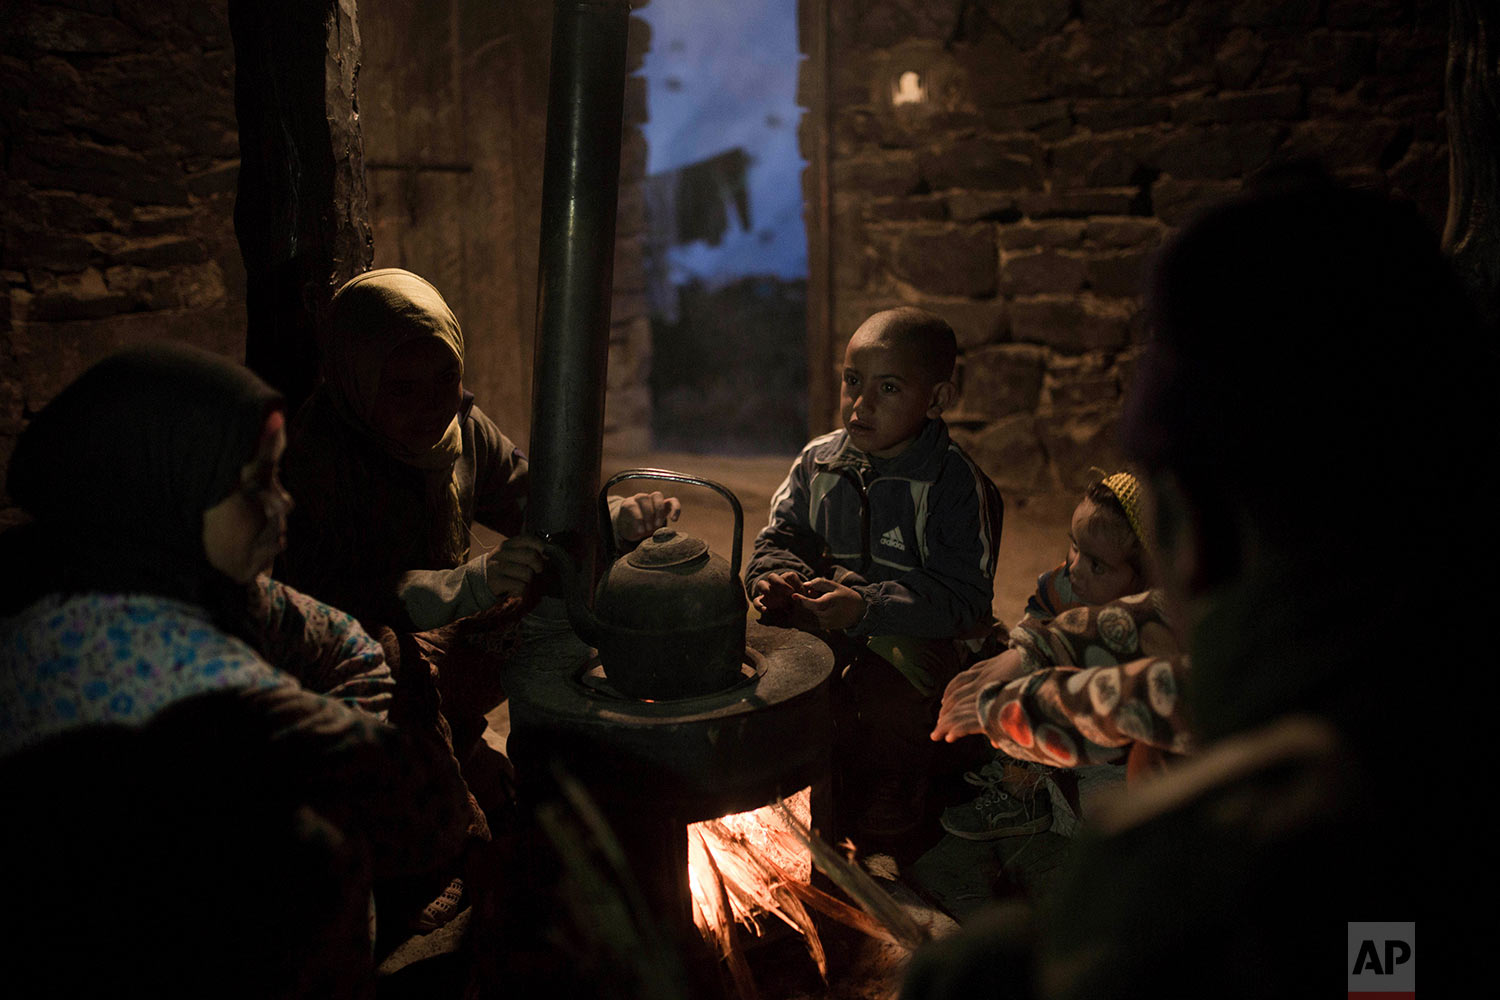 In this Wednesday, Feb. 14, 2018 photo, a family gathers around a fire to warm up inside their home in Tighanmin, a Middle Atlas village near Azilal, central Morocco. (AP Photo/Mosa'ab Elshamy